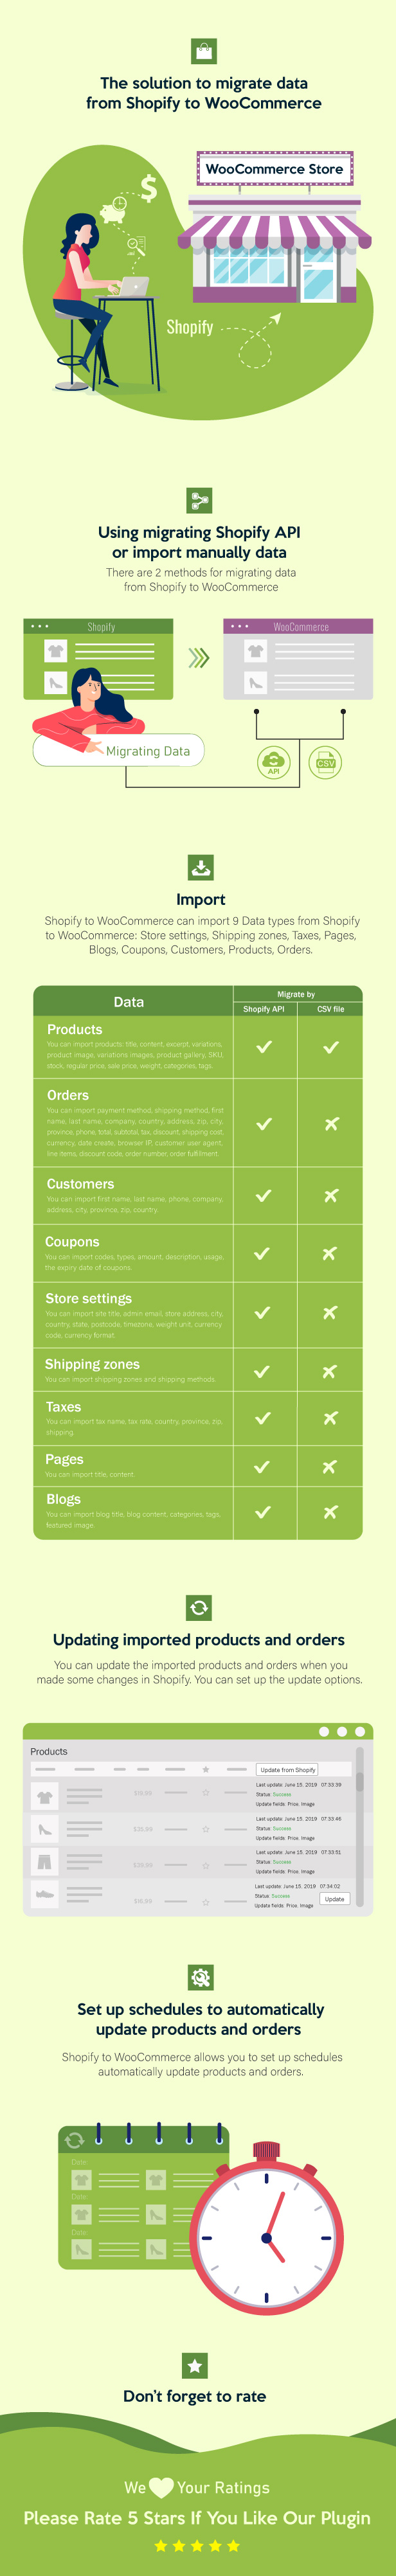 Import Shopify to WooCommerce - Migrate Your Store from Shopify to WooCommerce Download